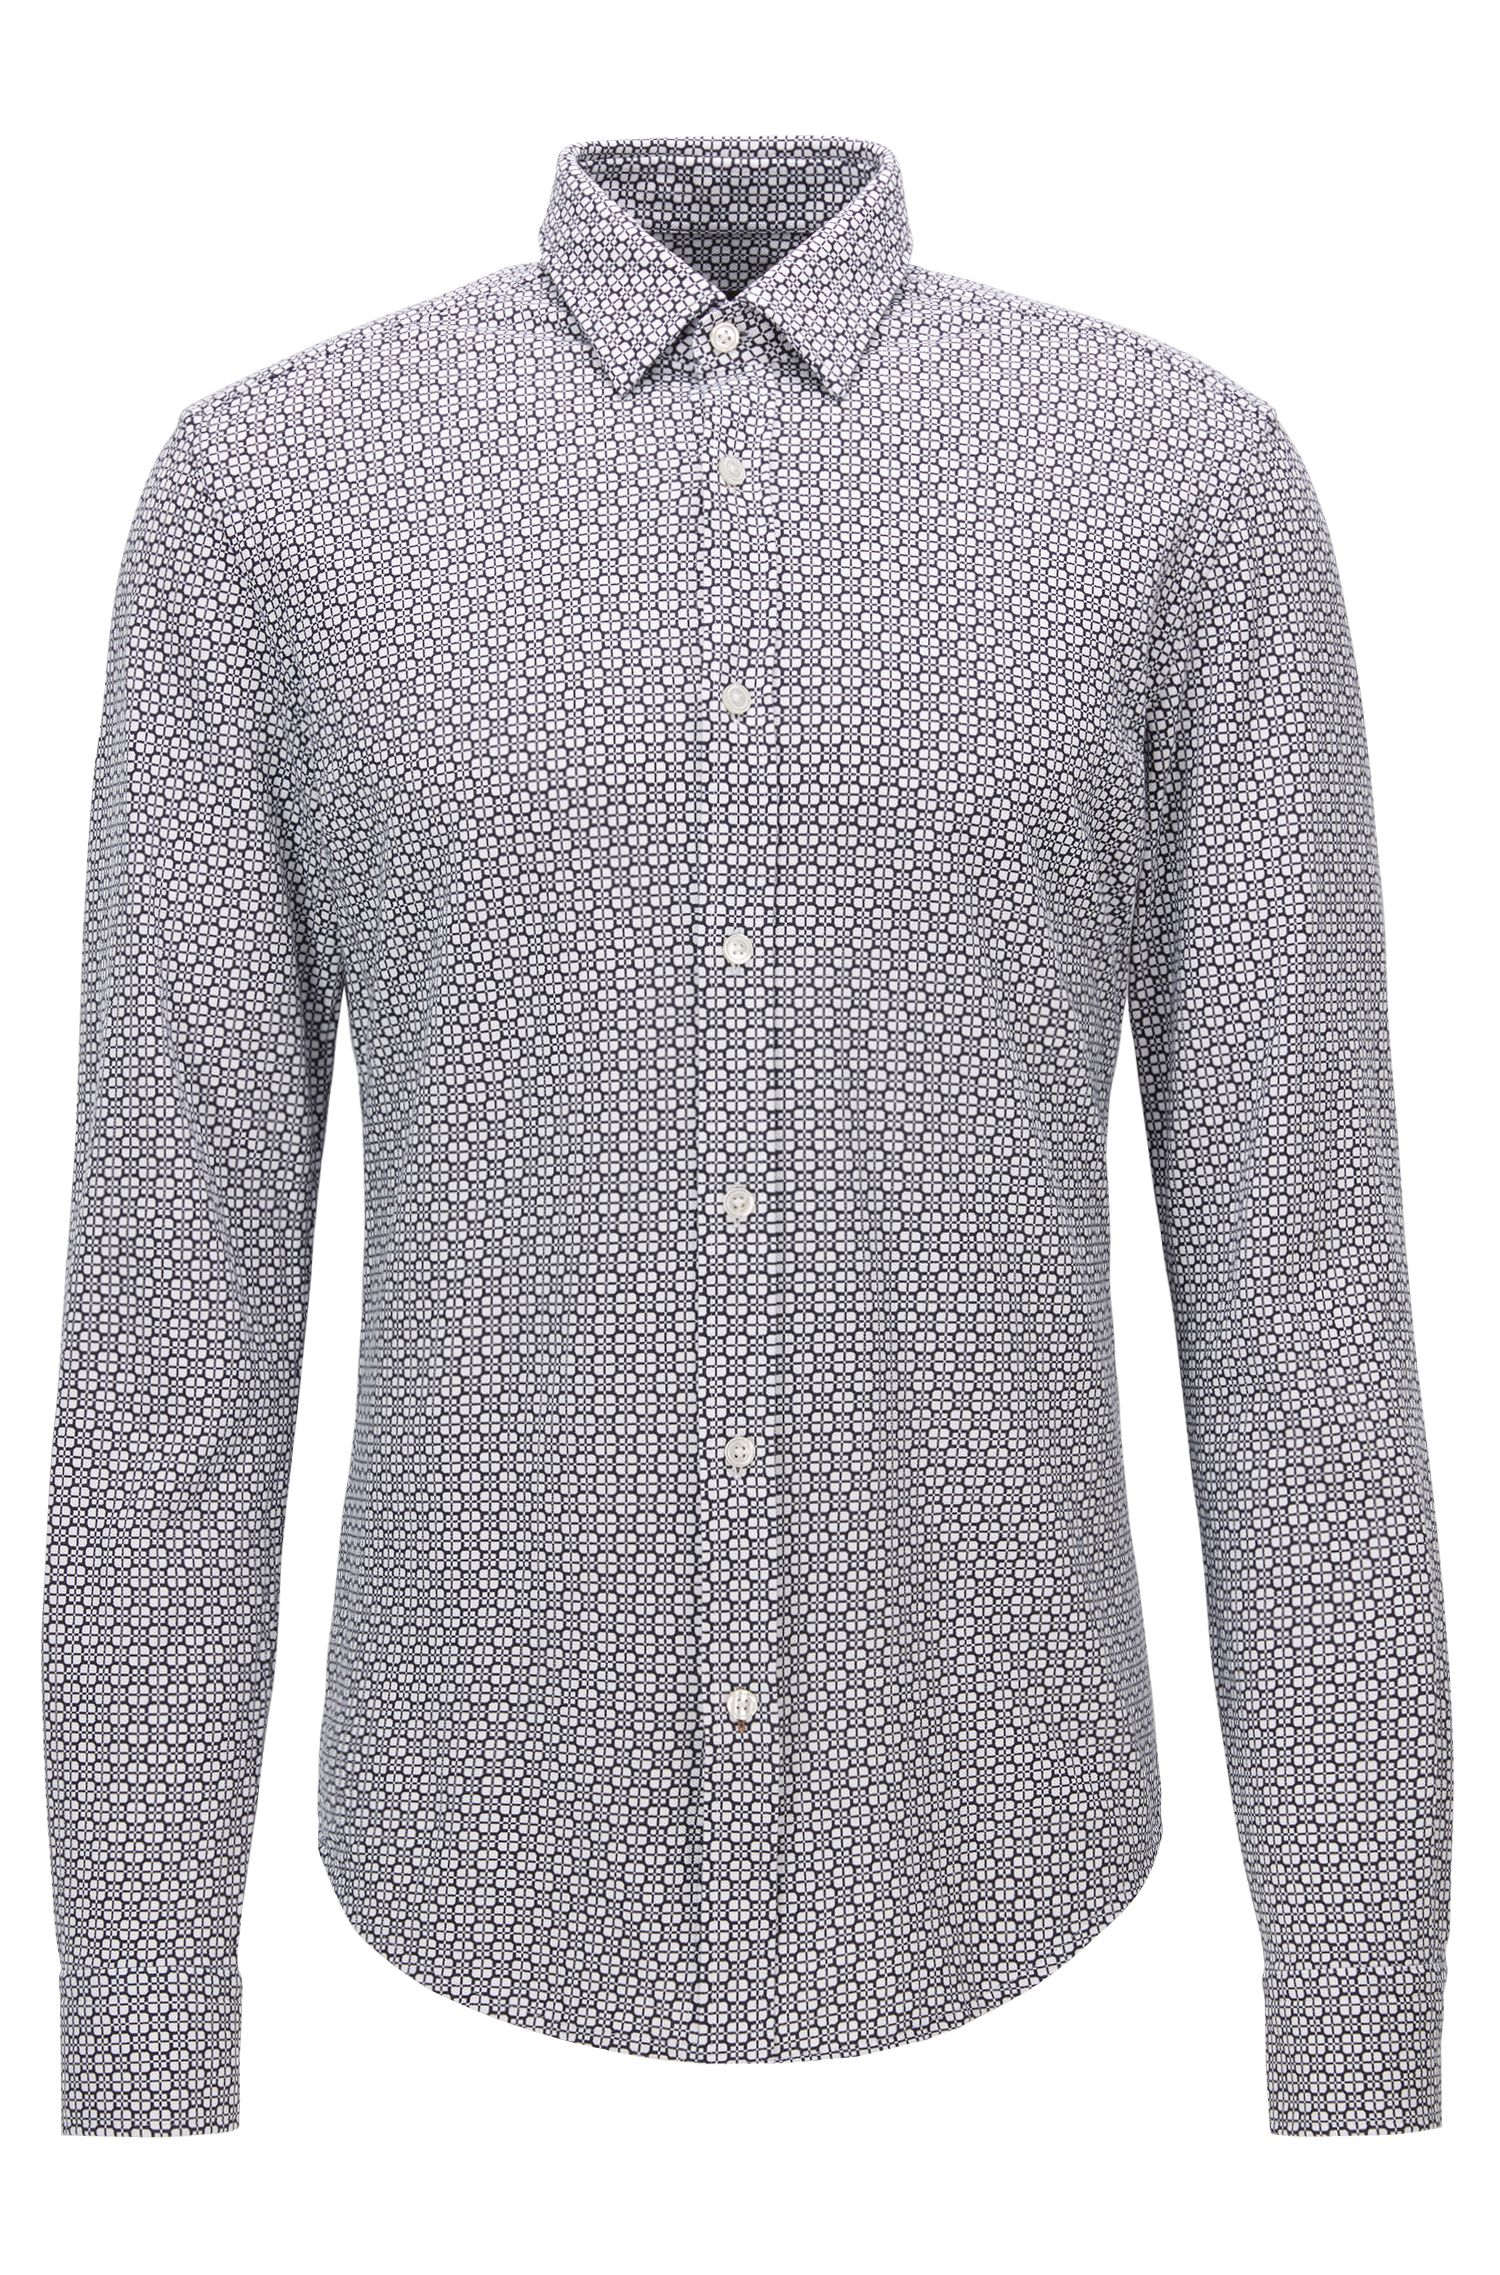 Square-Print Cotton Button Down Shirt, Slim Fit | Ronni